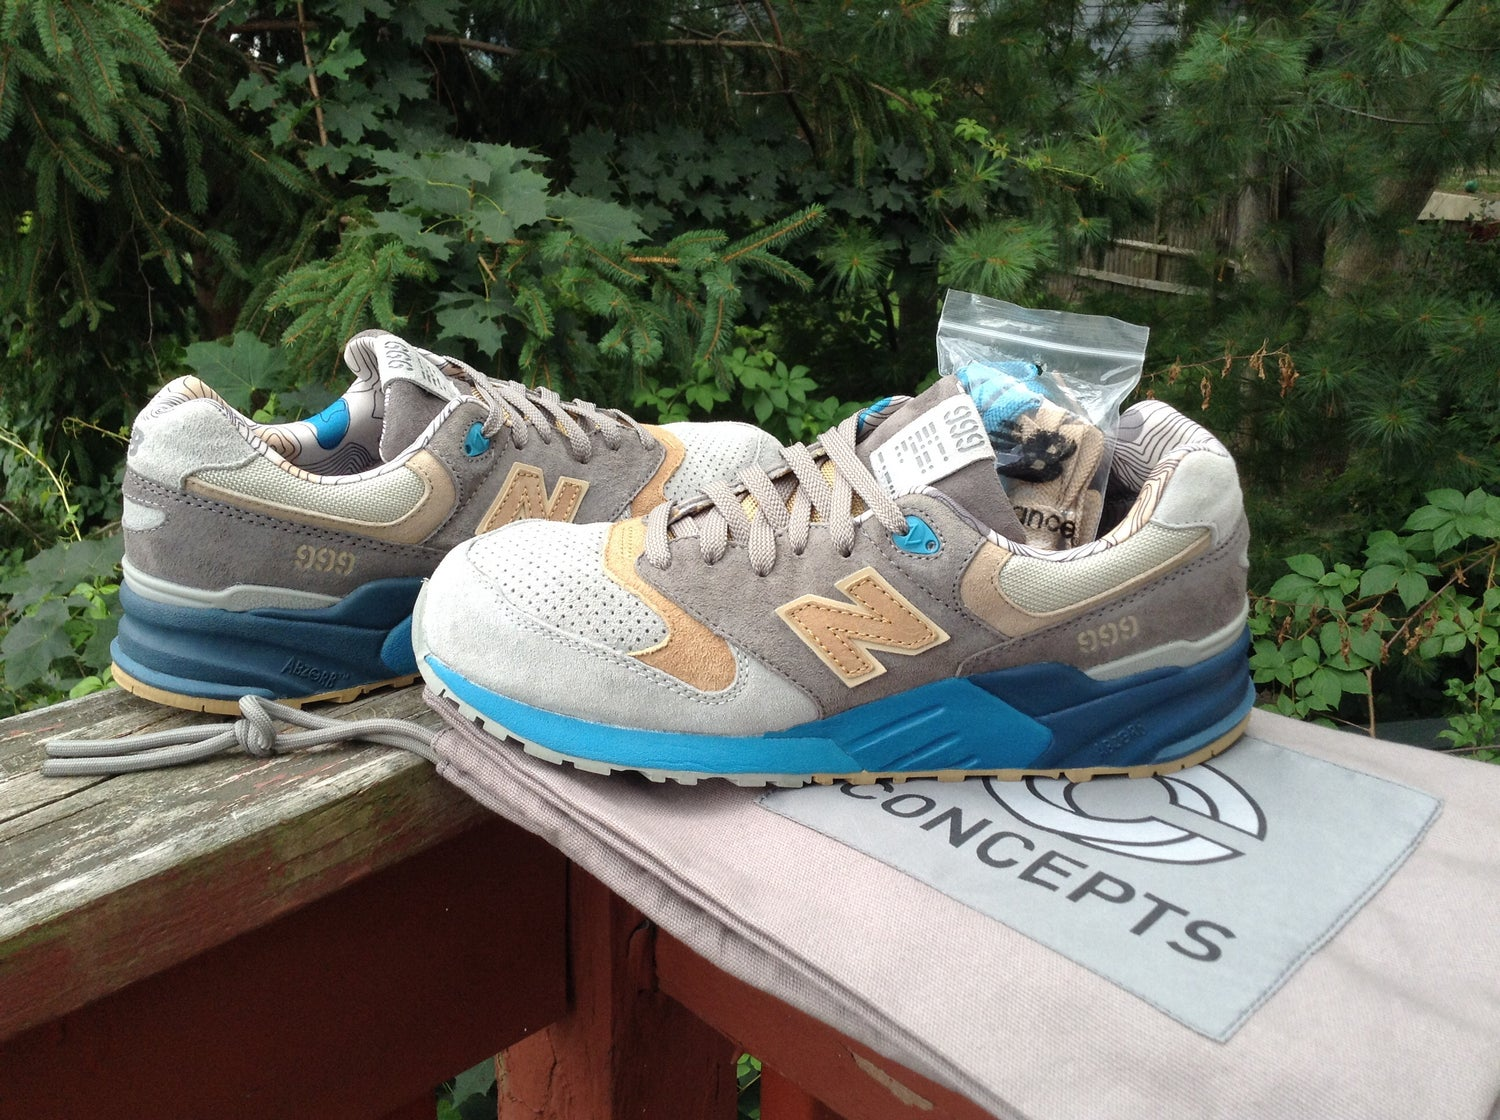 Image of New Balance x Concpts 999 Seals